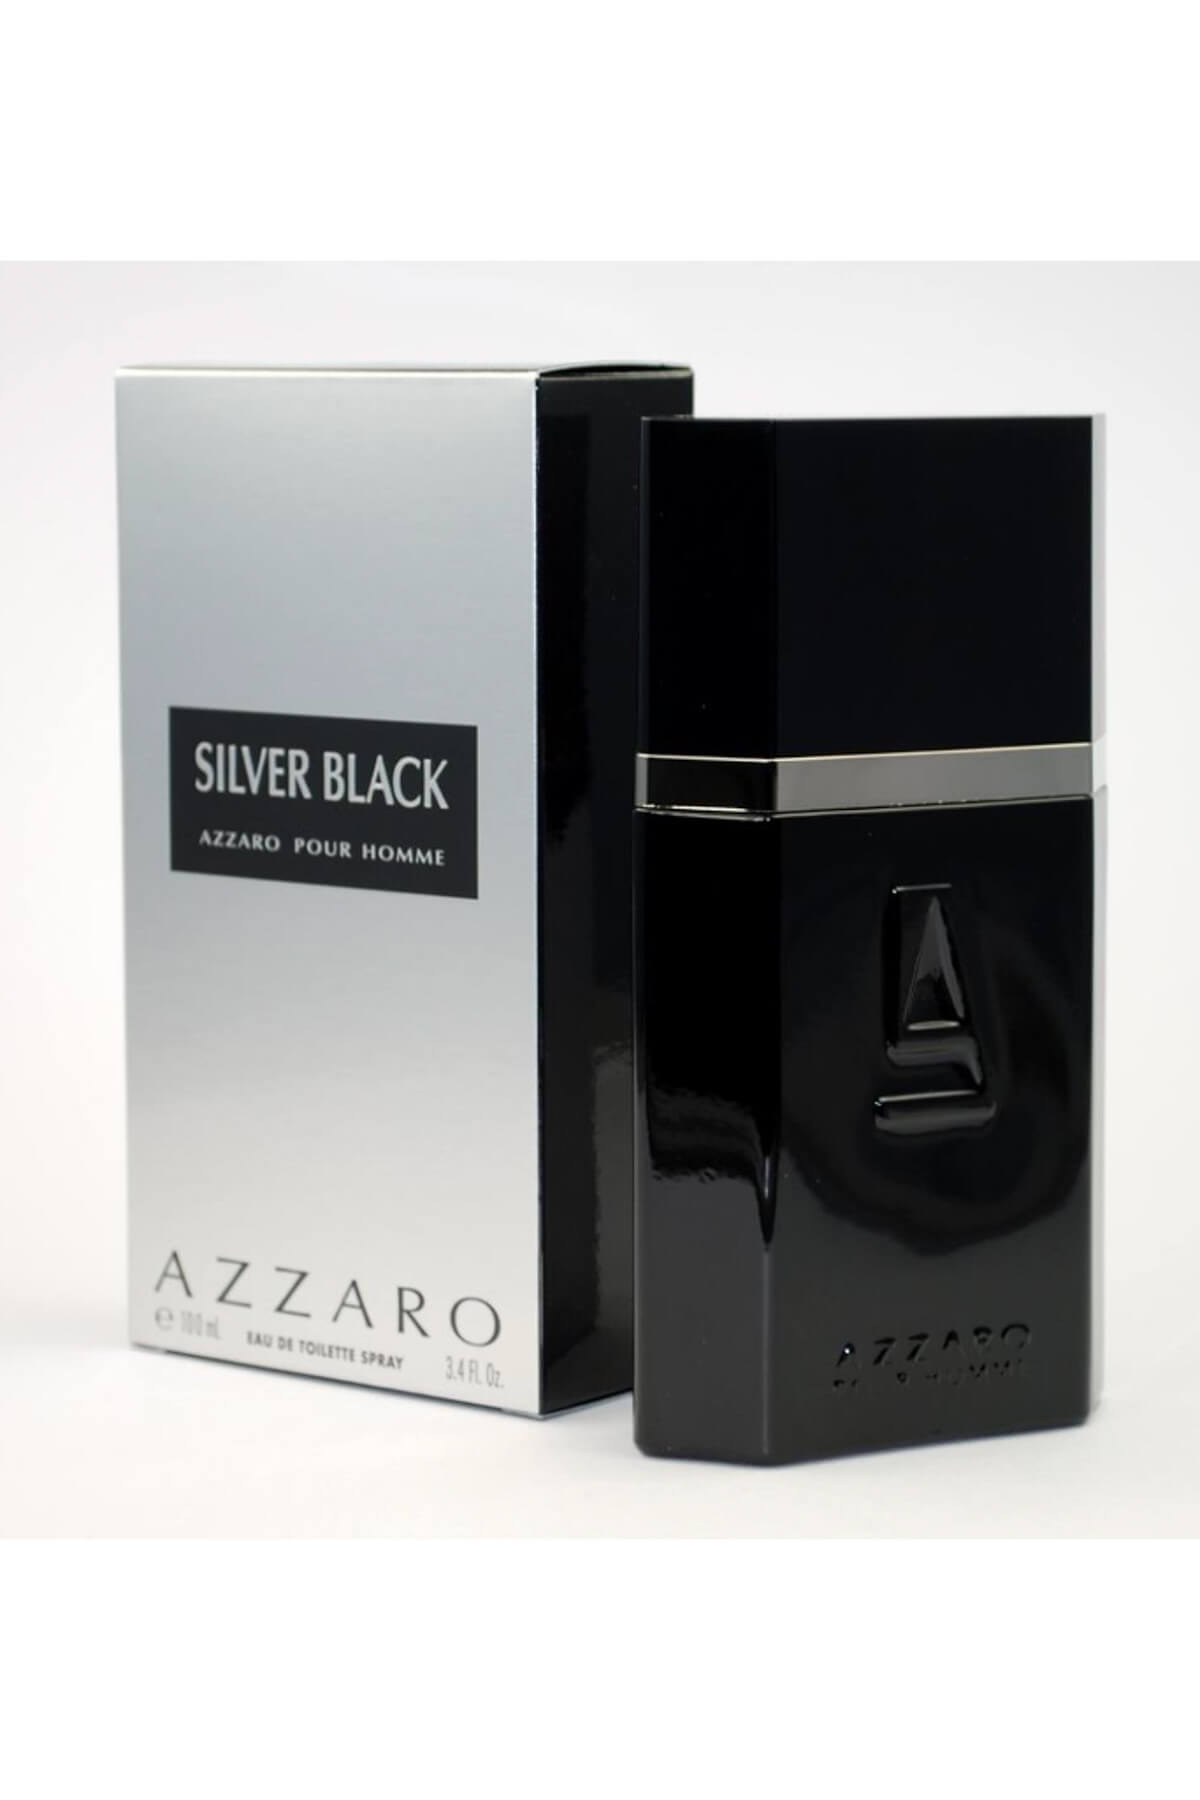 Loris Azzaro Silver Black Eau De Toilette Spray 100ml